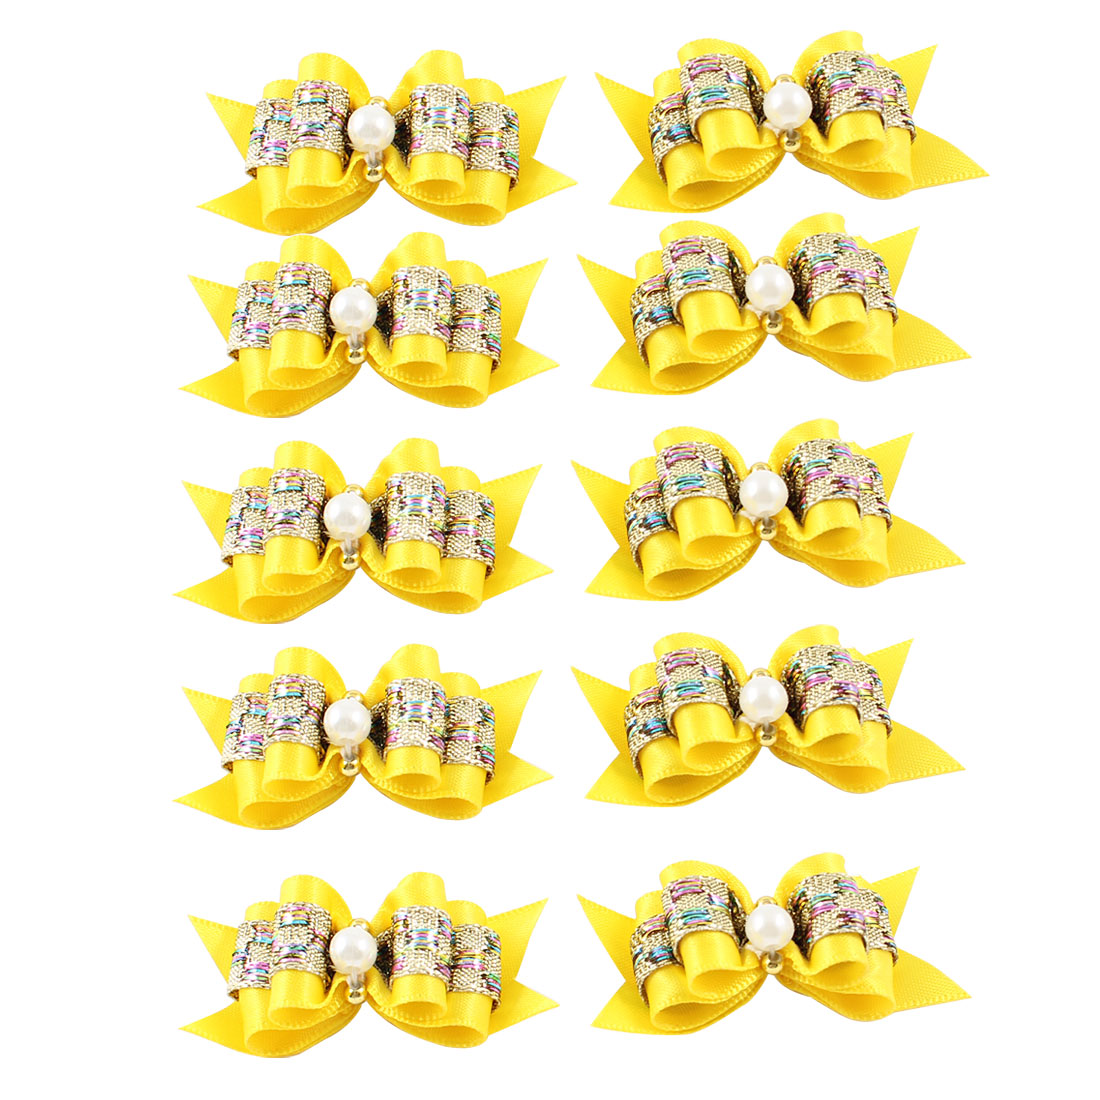 10 Pcs Bowknot Round Beads Accent Pet Dog Cat Stretch Hair Band Yellow